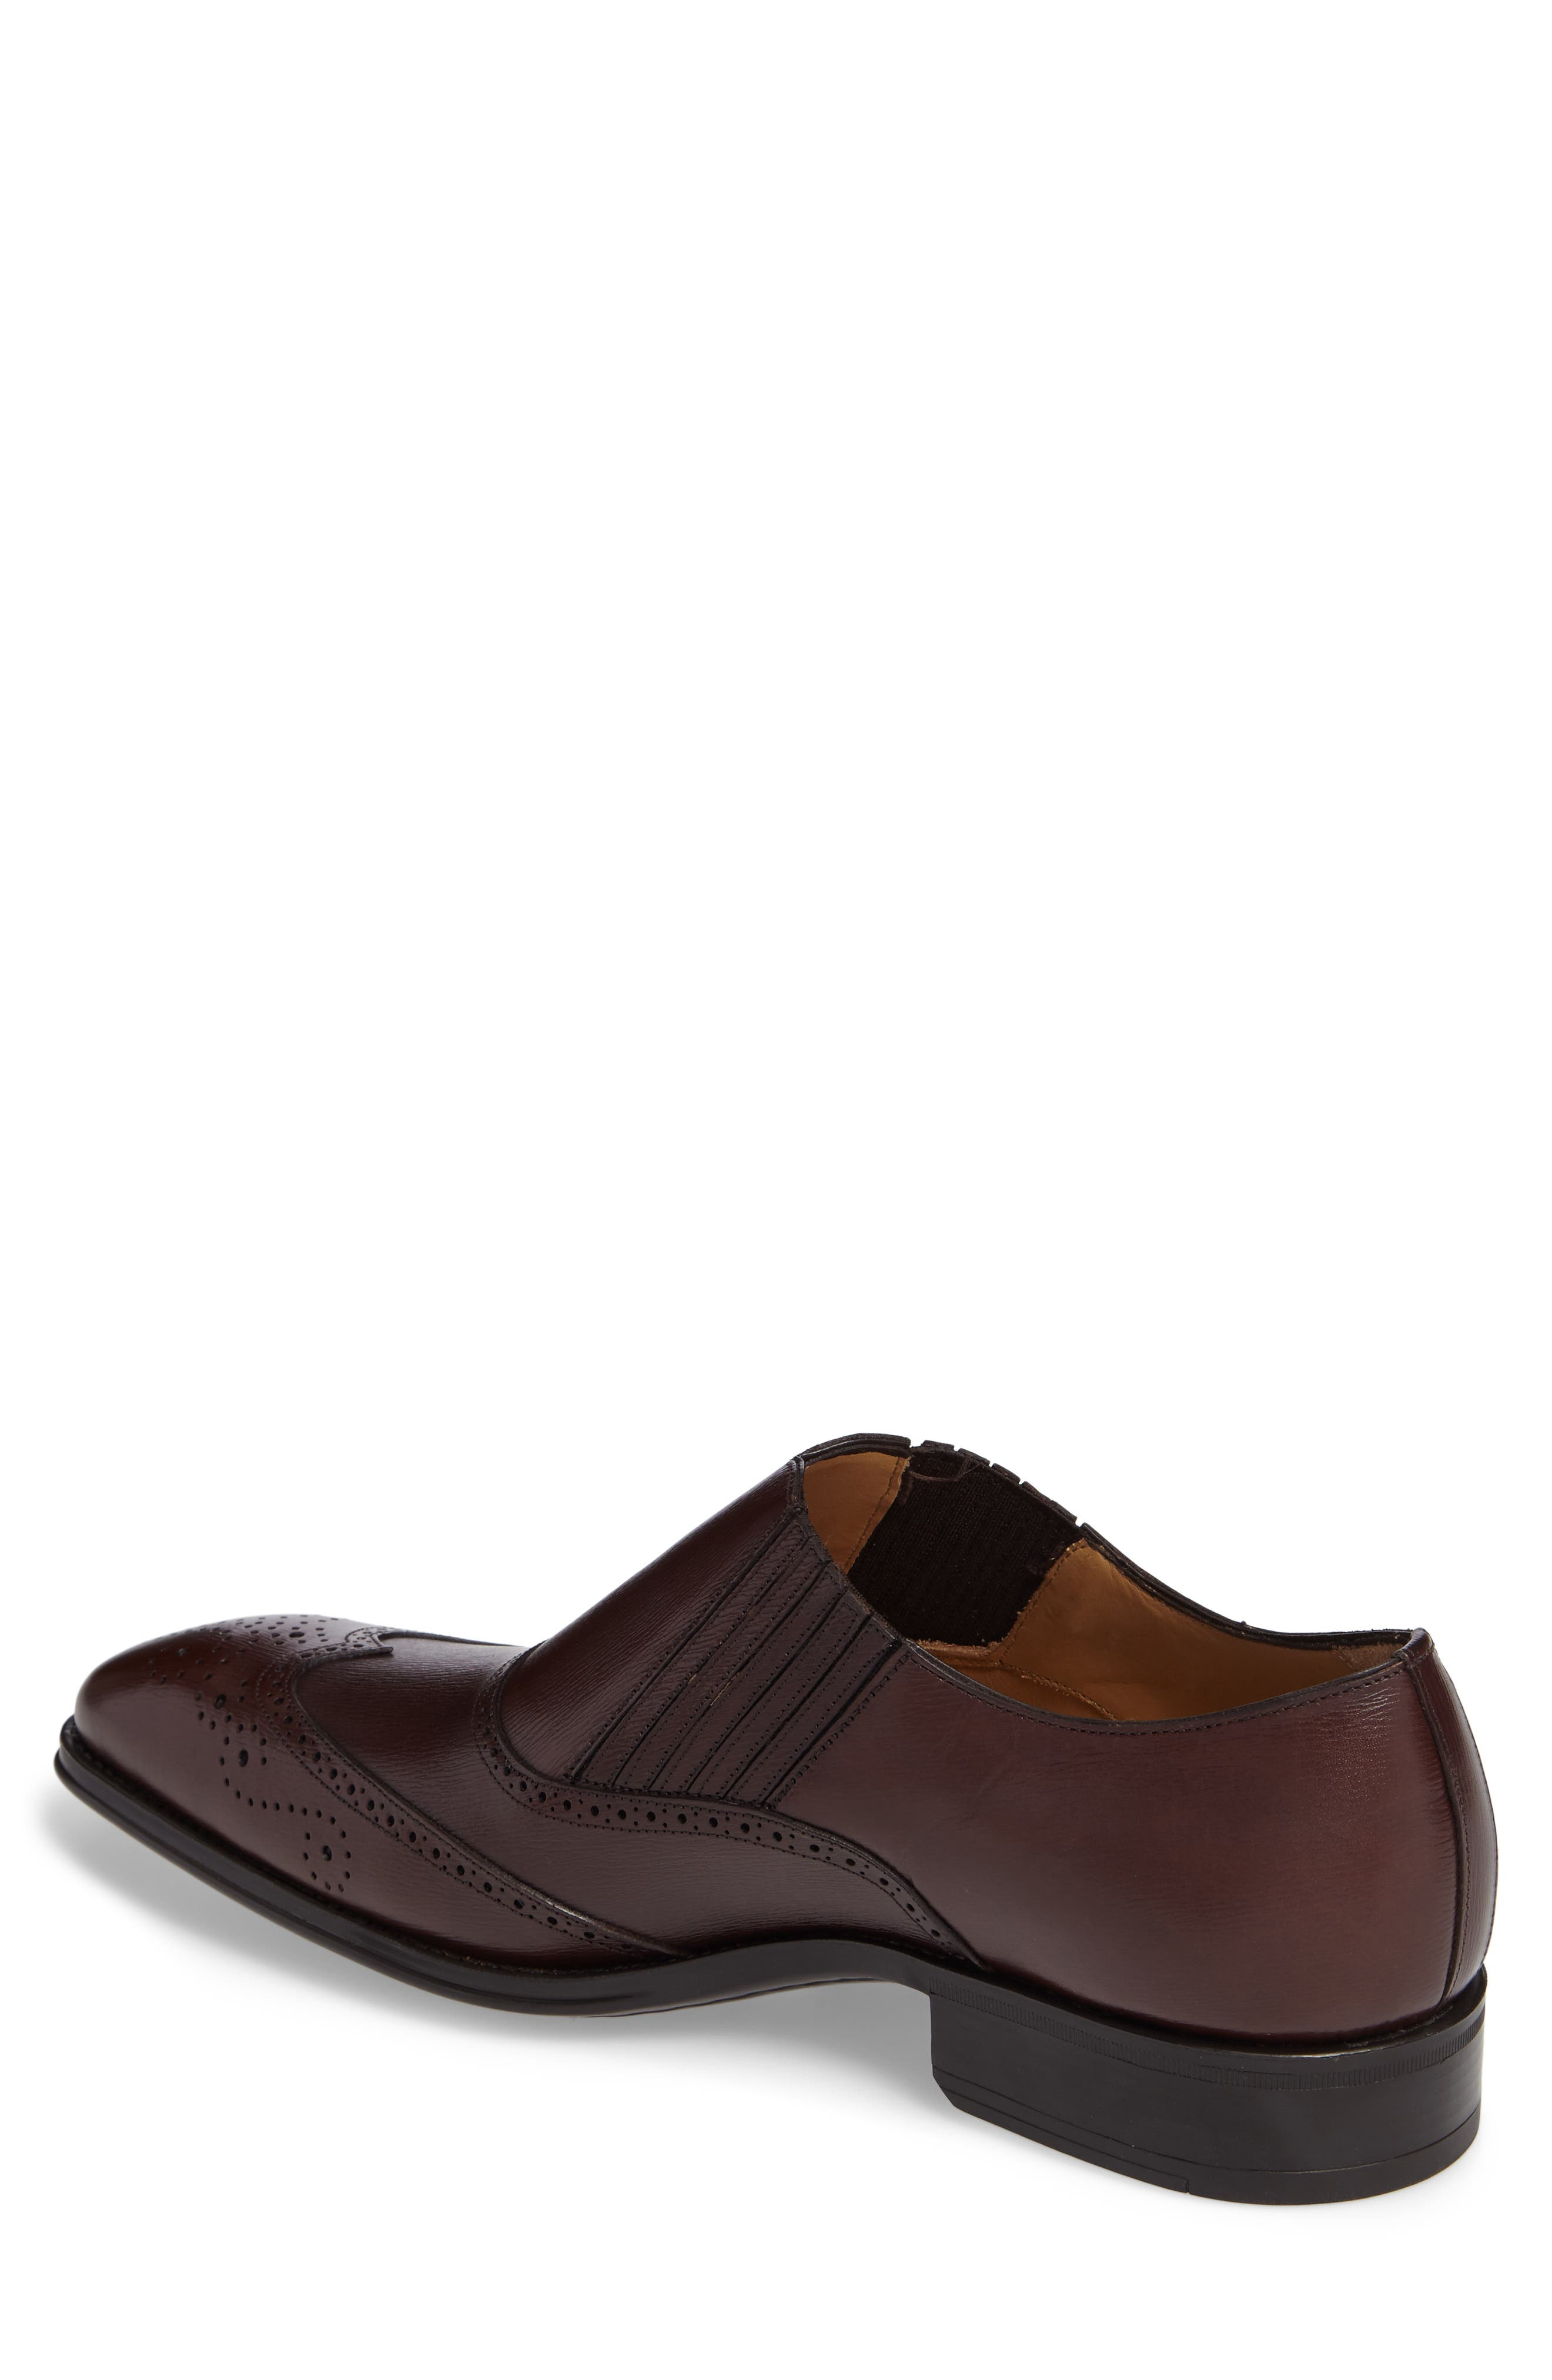 Alternate Image 2  - Mezlan Rioja Venetian Loafer (Men)